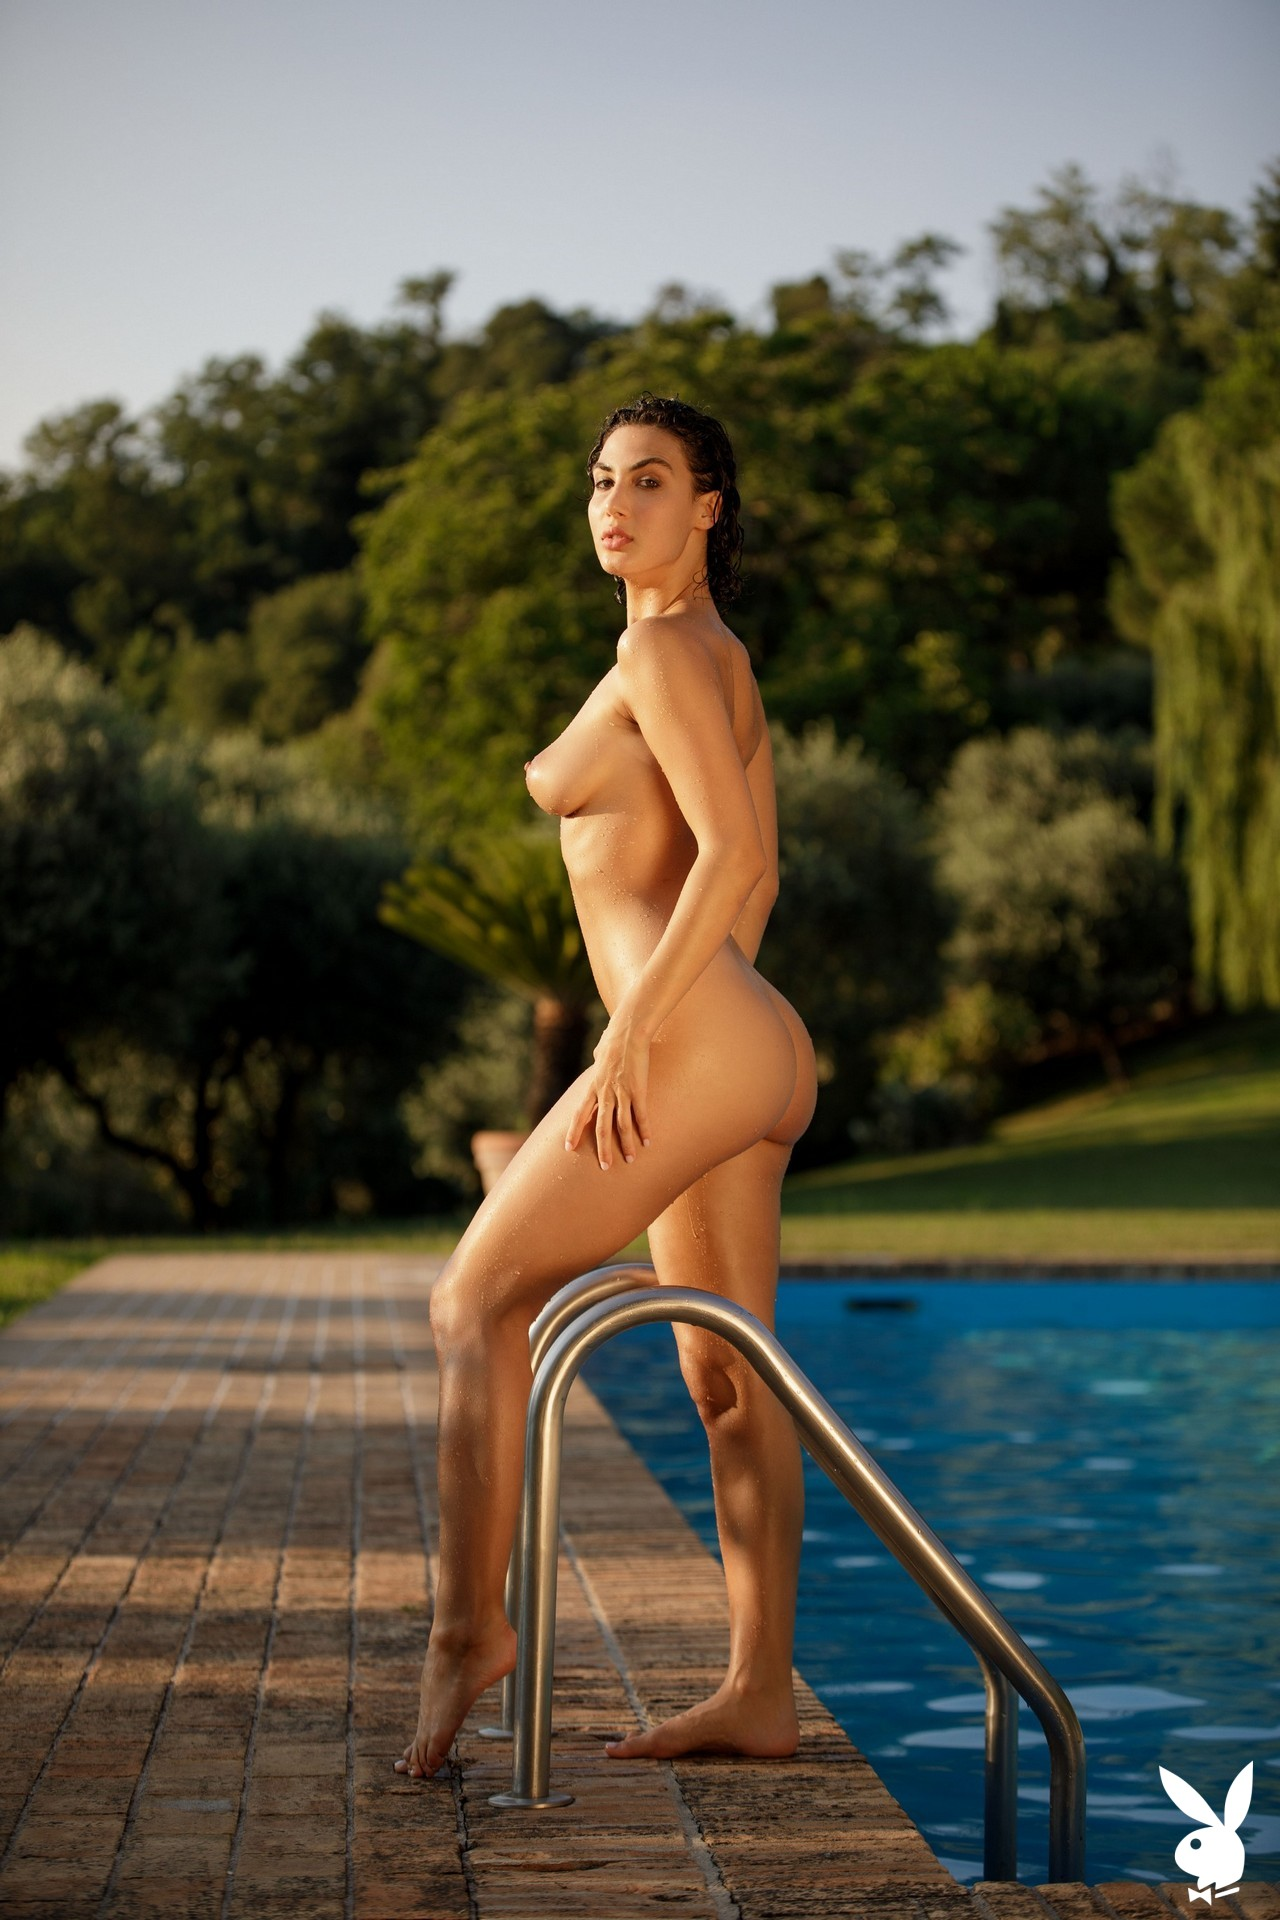 Gena Miller In Immerse Yourself Playboy Plus (26)